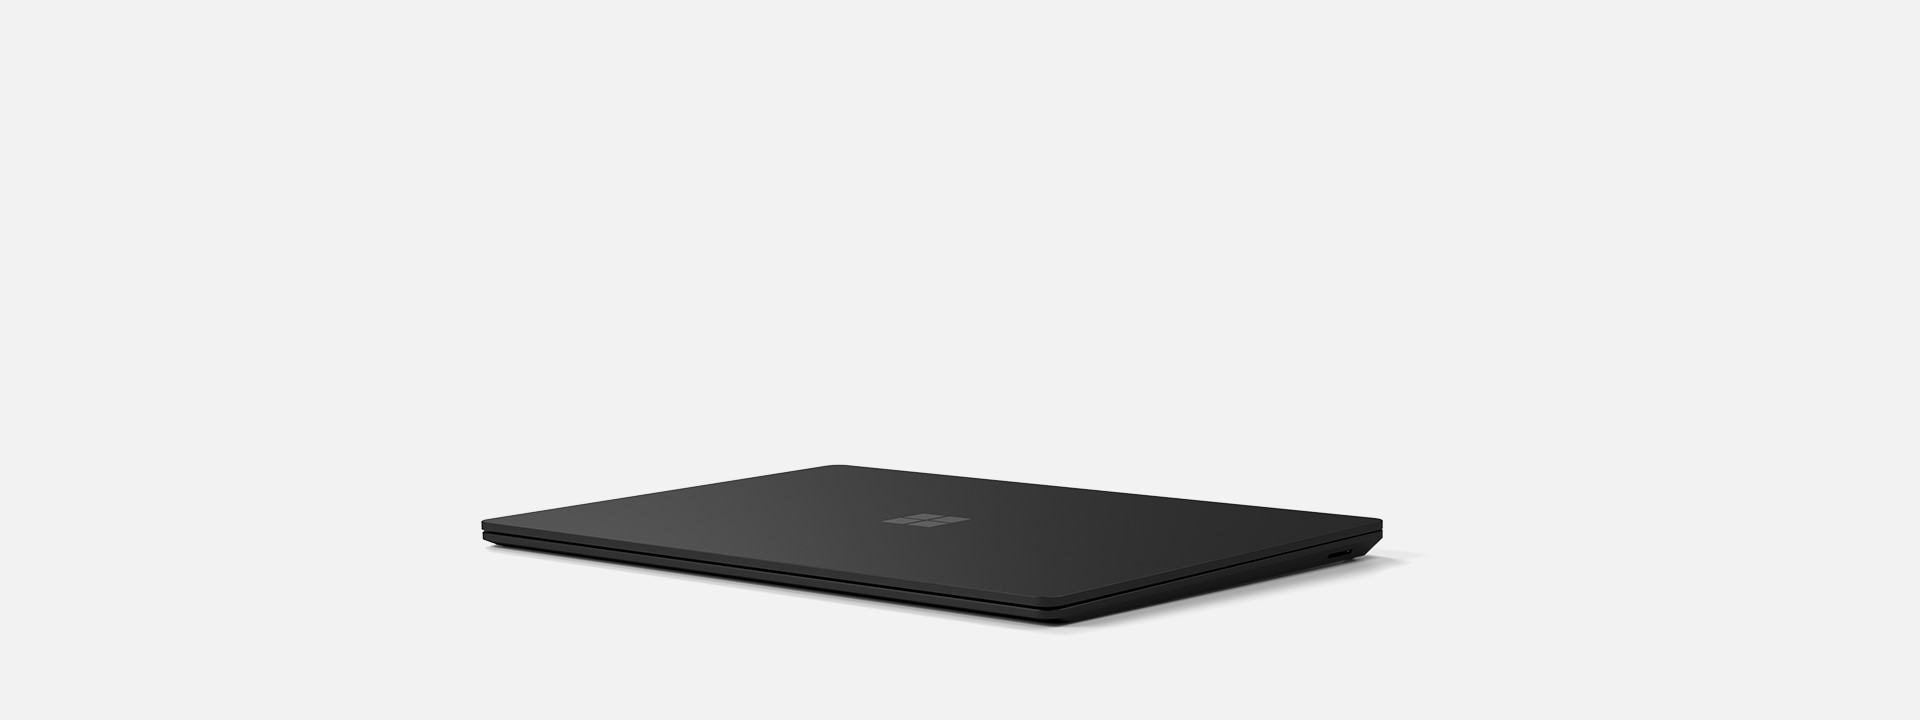 Surface Laptop 4 for Business.